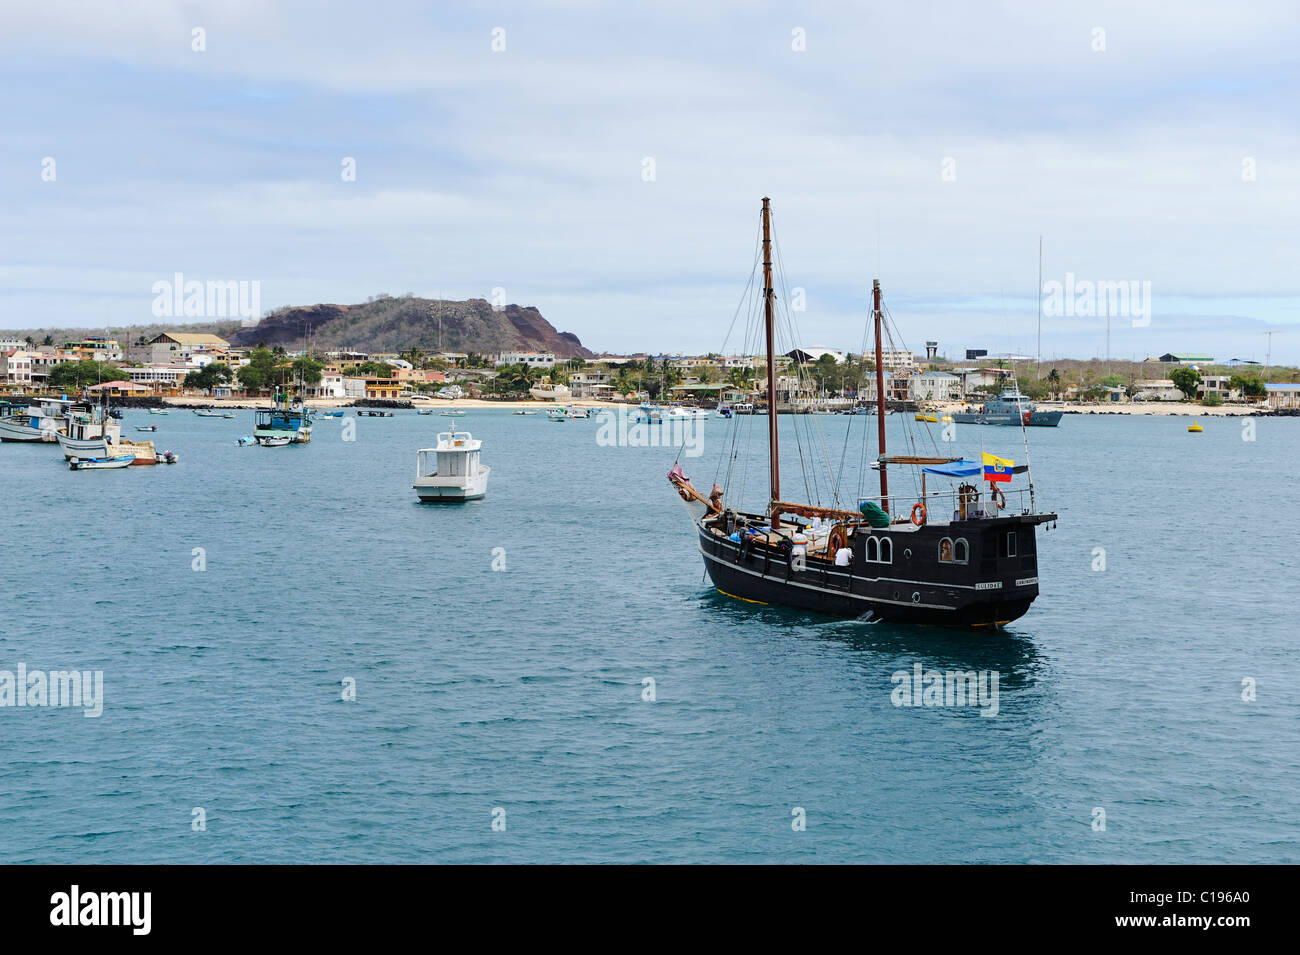 Harbour of San Cristóbal Island on Galapagos with an ancient sailing boat in the front, Ecuador, South America - Stock Image